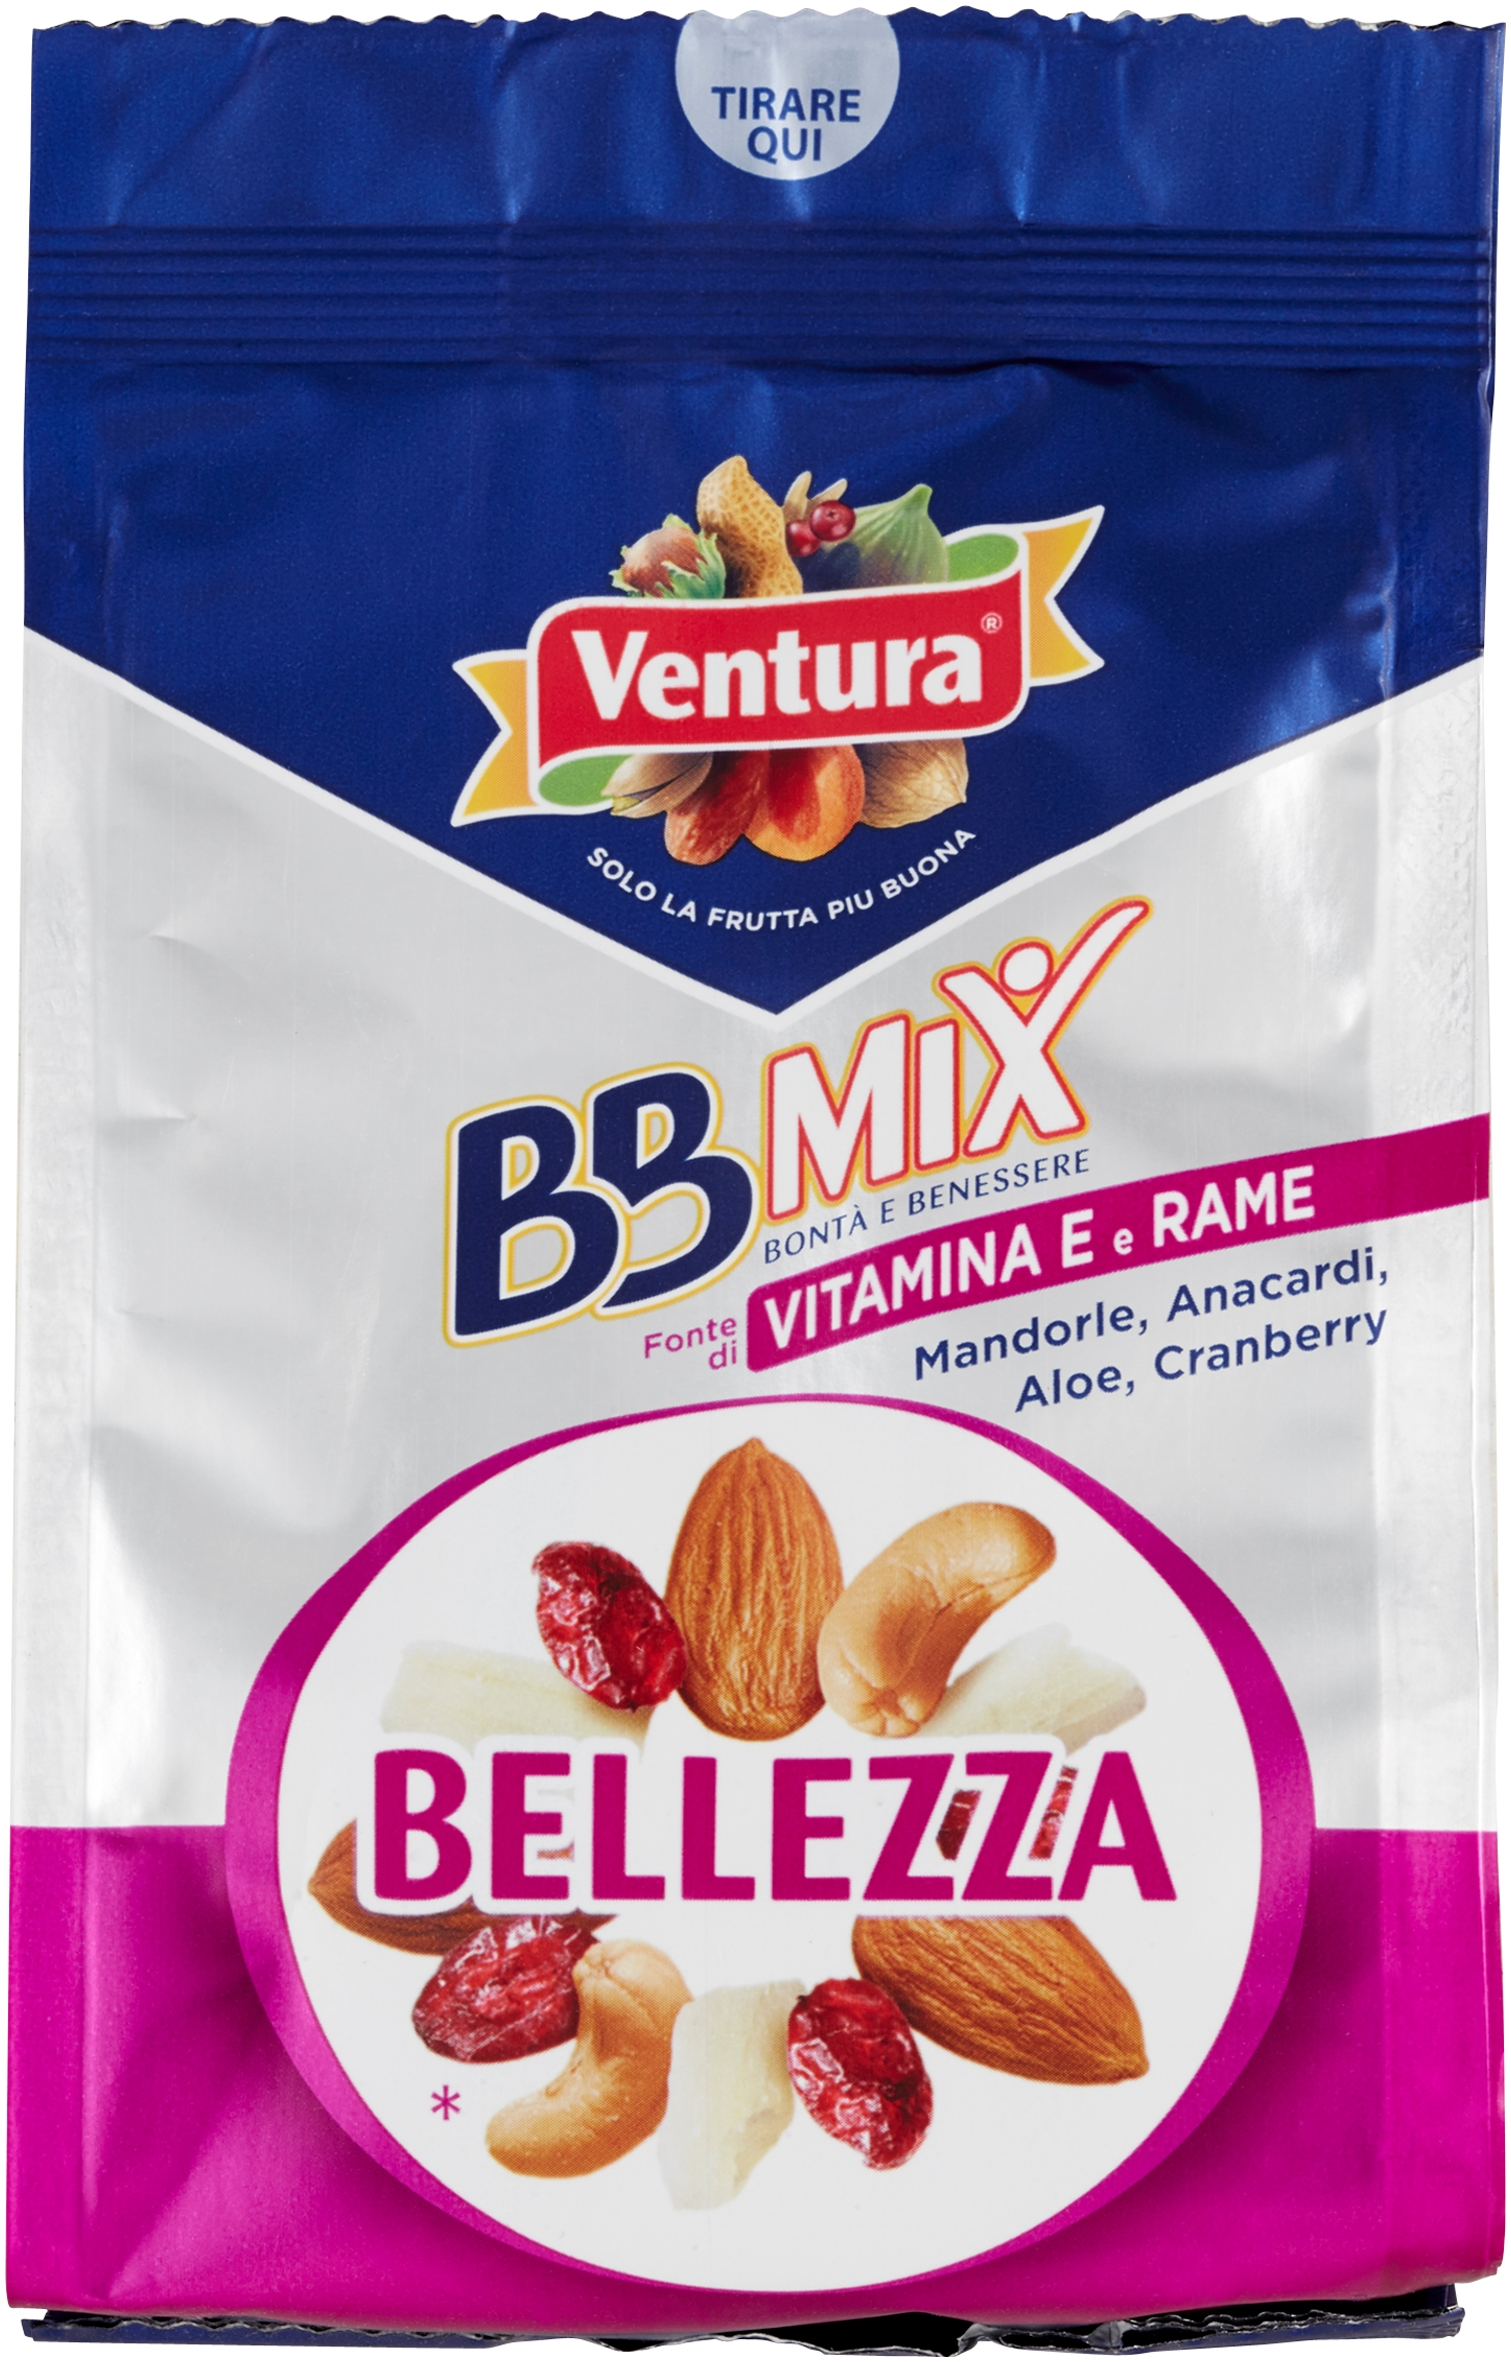 BB MIX BELLEZZA VENTURA 150G